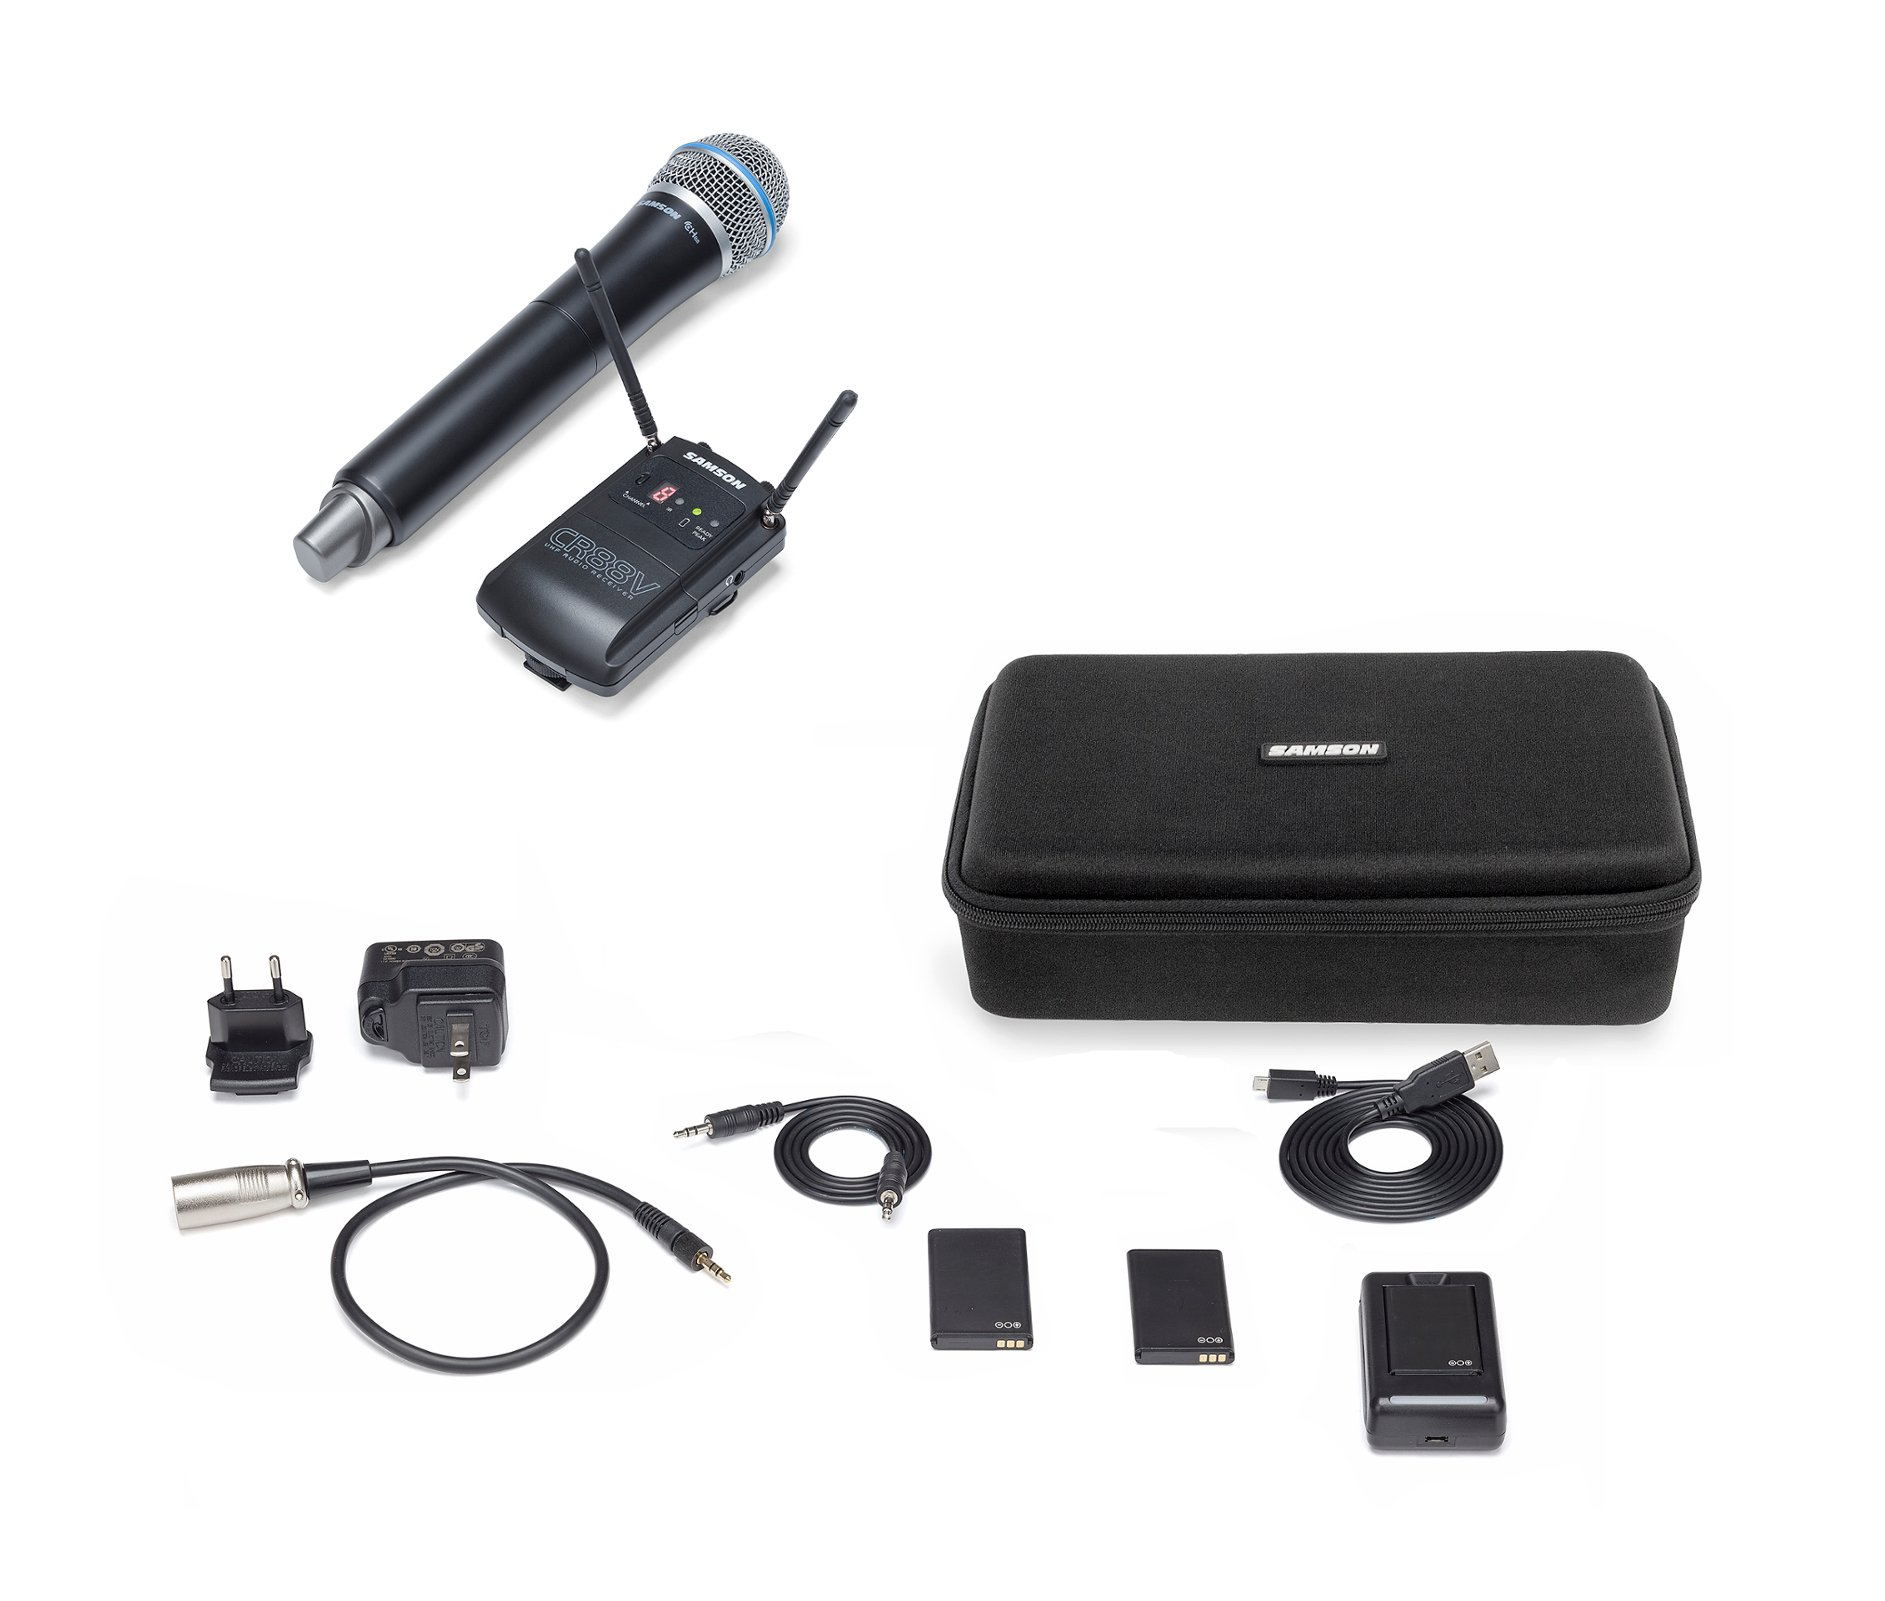 Samson Concert 88 Camera (Handheld) K Band Wireless Microphone System with Q8/CH88 Handheld Microphone/Transmitter SWC88VHQ8-K